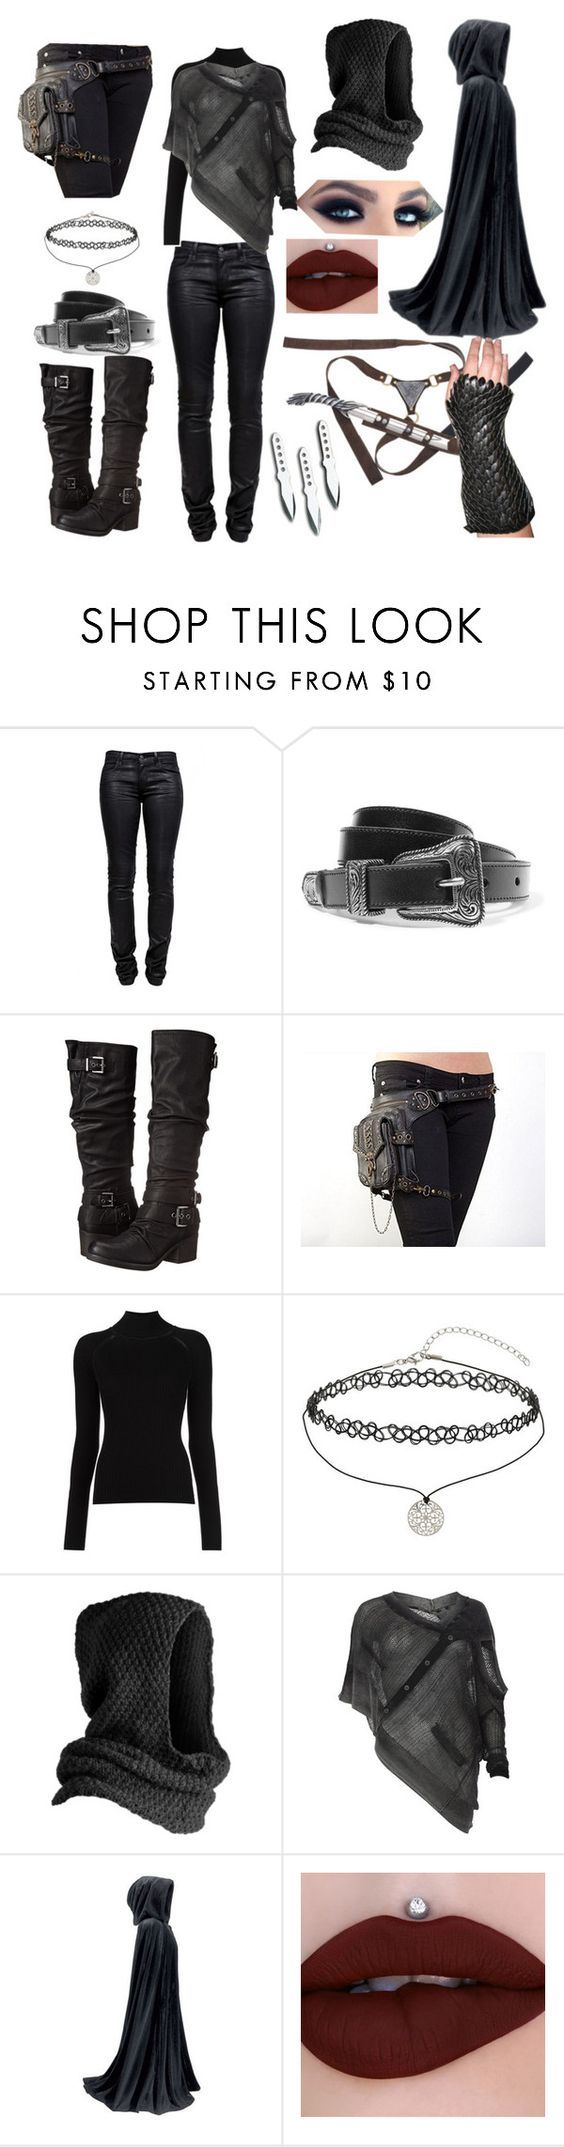 """""""LOTR Female Assassin Outfit #2"""" by e-sekovanikj ❤ liked on Polyvore featuring J Brand, Yves Saint Laurent, Carlos by Carlos Santana, Misha Nonoo, Miss Selfridge, Pieces and AllSaints"""